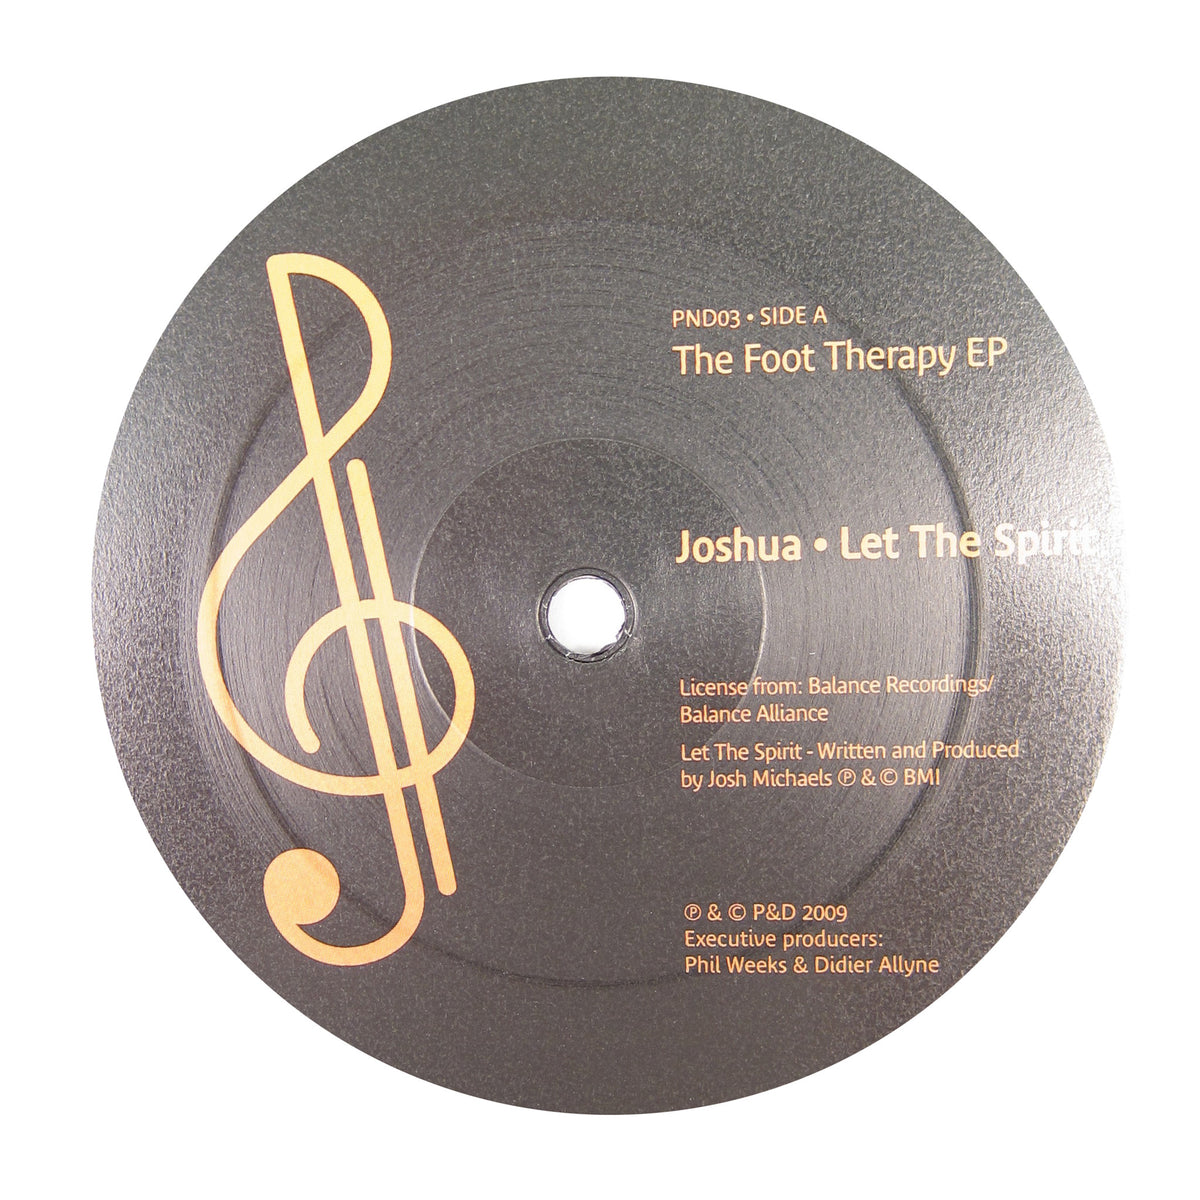 P&D: The Foot Therapy (Joshua, Chez Damier, Ron Trent) Vinyl 12""